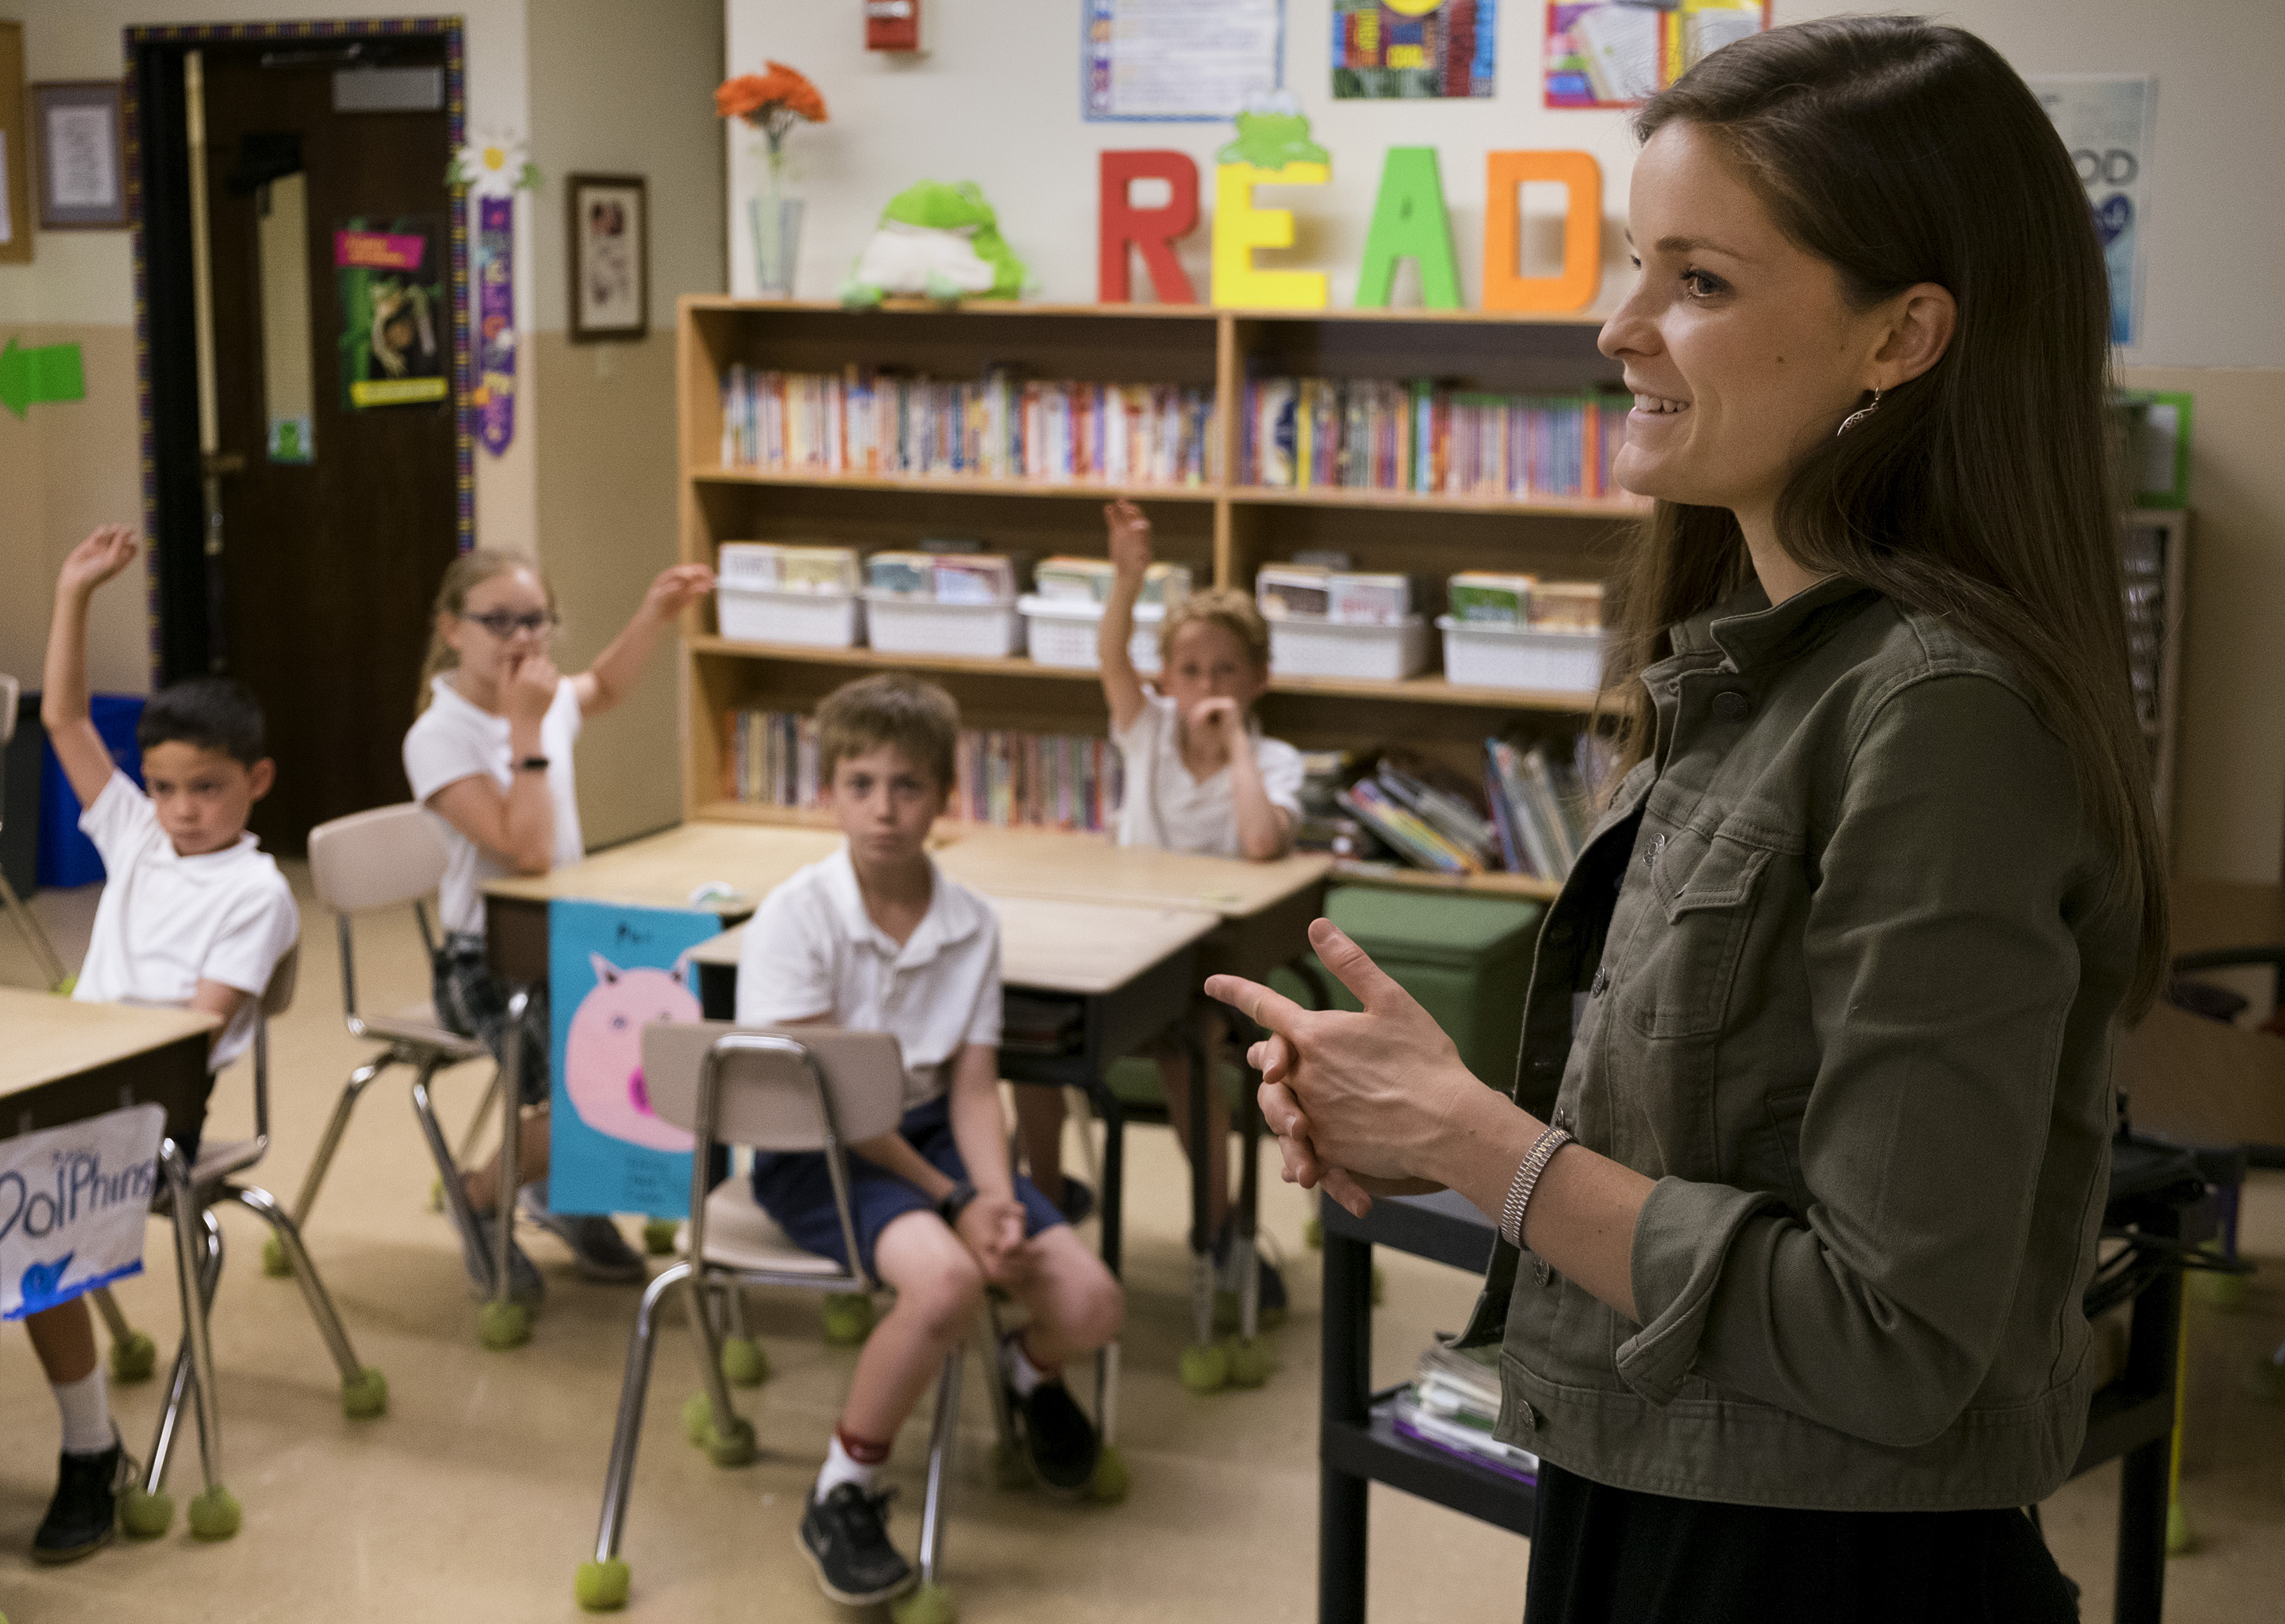 Third-grade teacher Mary Staten instructs her students during class at Incarnate Word School in Chesterfield May 21. Staten began using the Examen, a prayer technique that focuses on reflection on the events of the day in order to detect God's presence and discern His direction. She introduced the prayer to her students as part of her participation in the Contemplative Leaders in Action program, sponsored by the Office of Ignatian Spirituality of the Maryland and USA Northeast Provinces of the Society of Jesus.